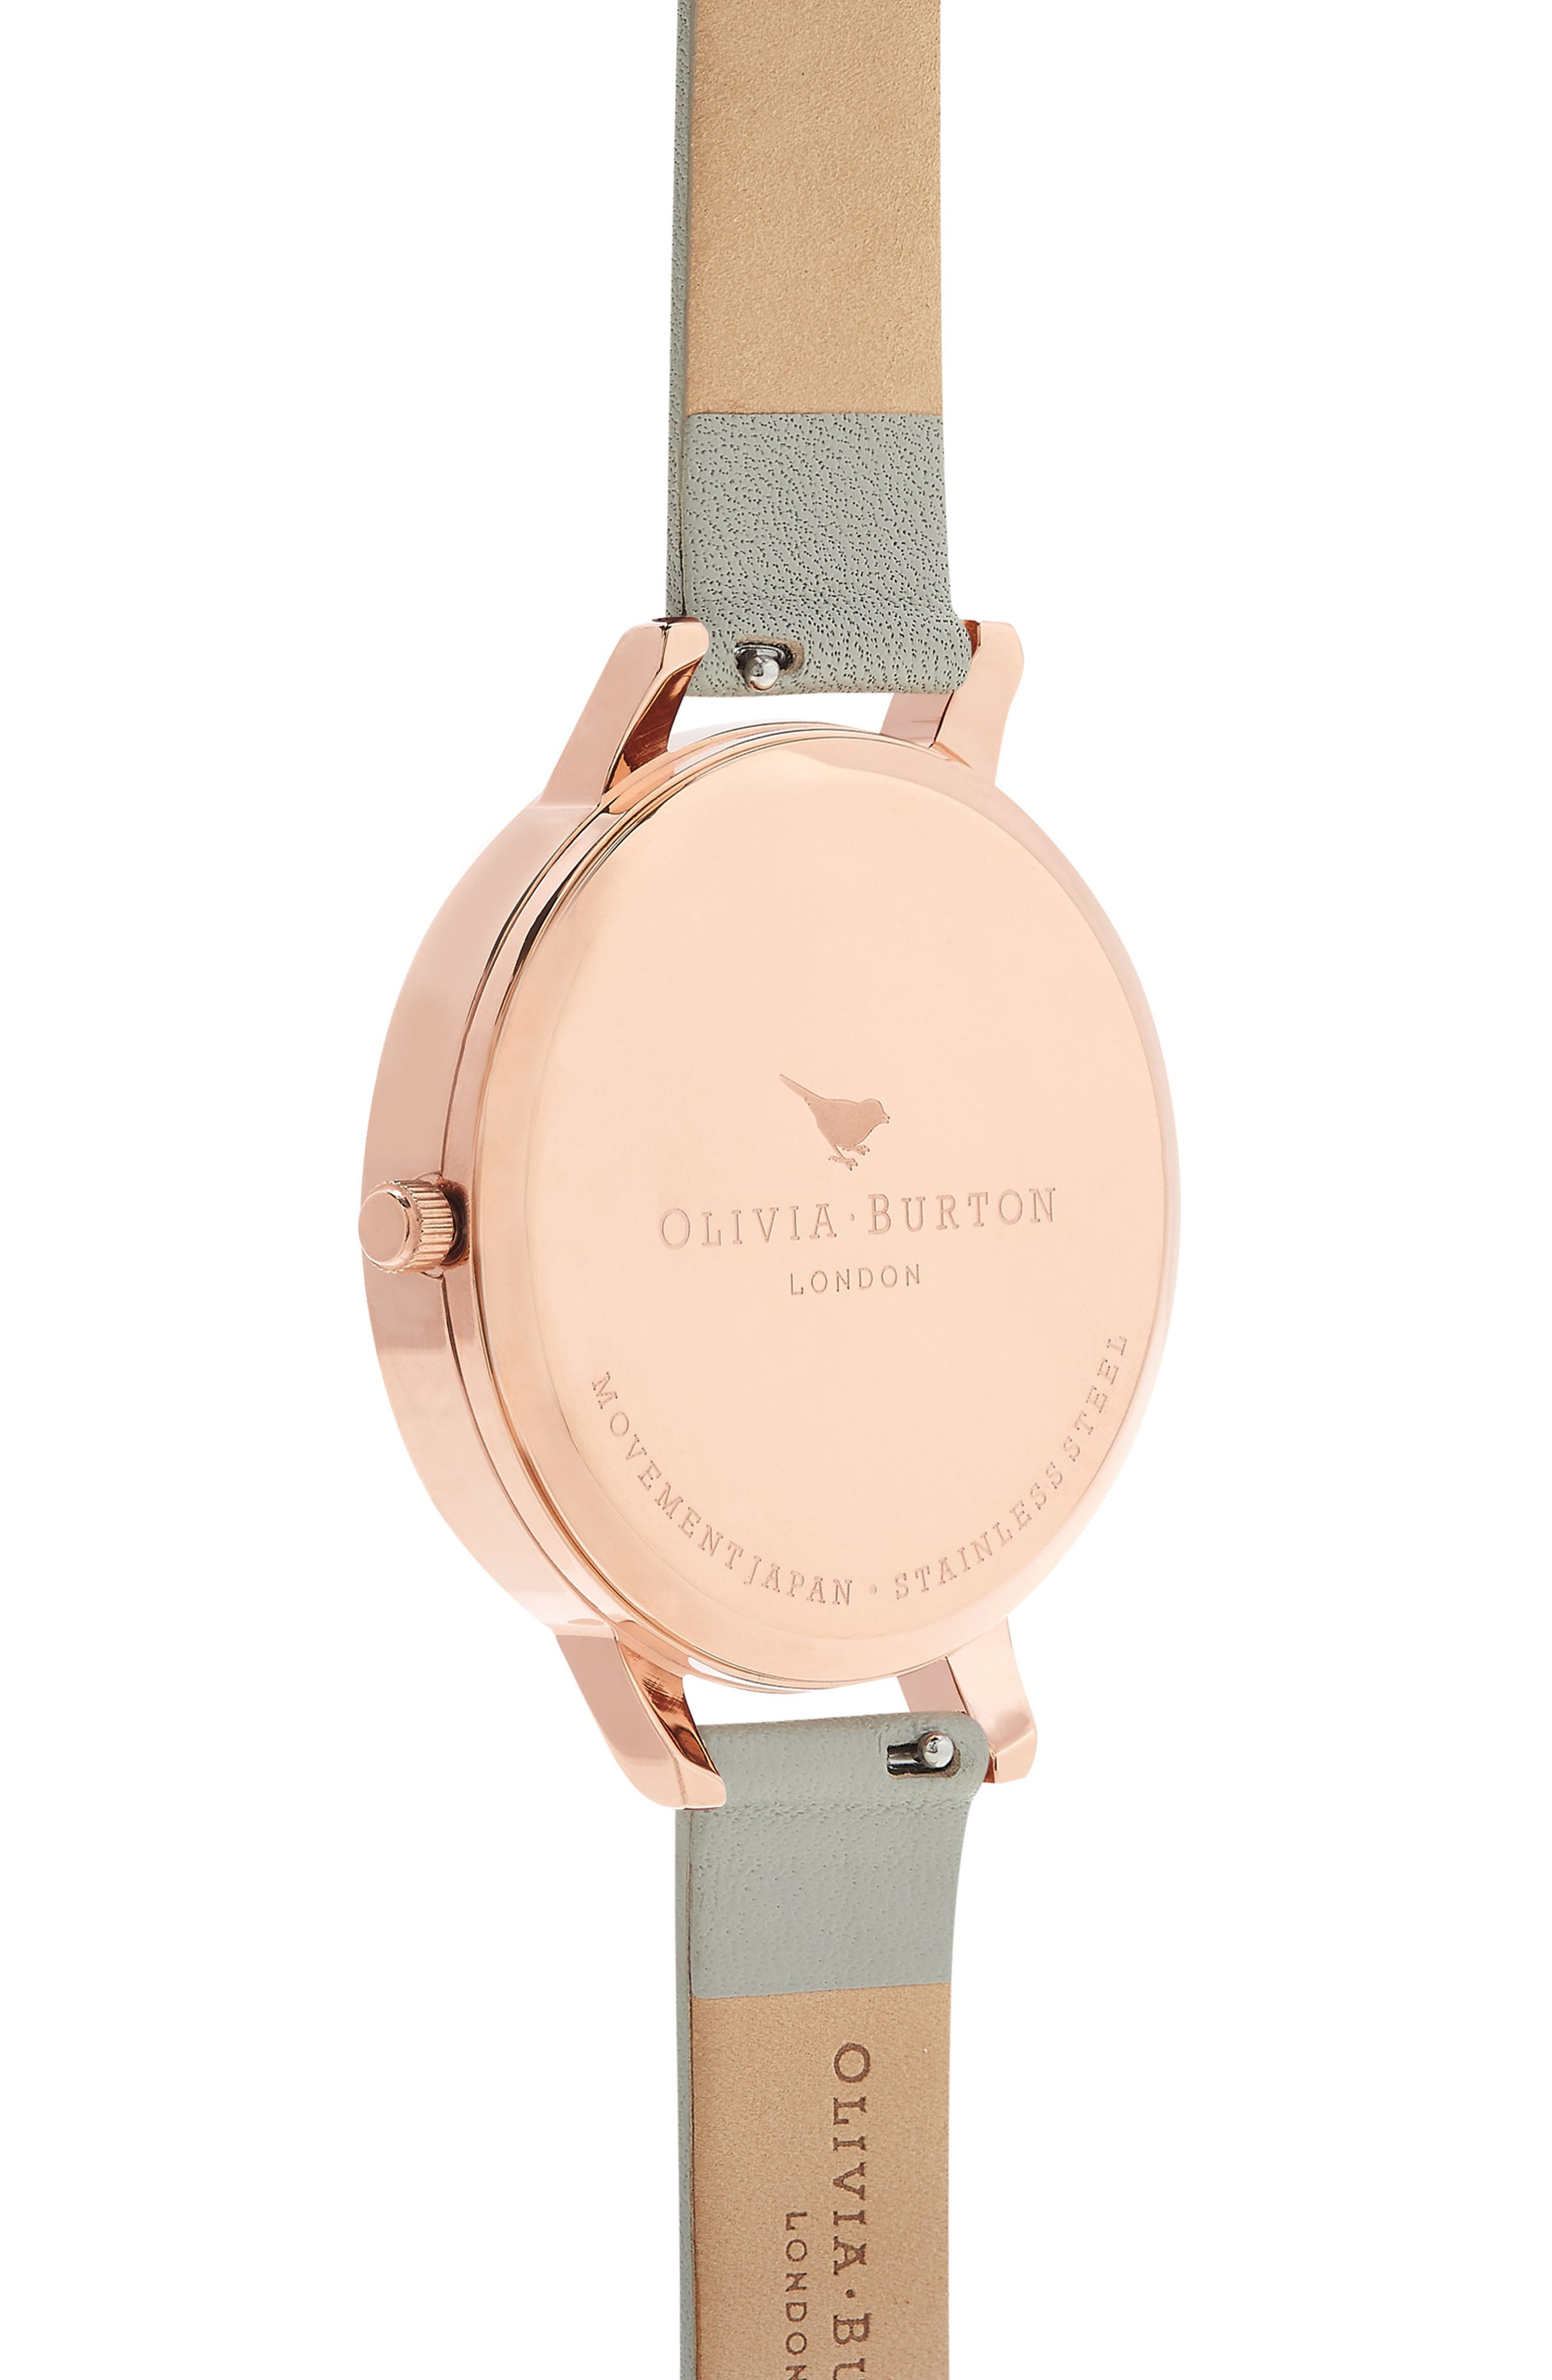 OLIVIA BURTON, Bejewelled Leather Strap Watch, 38mm, Alternate thumbnail 2, color, GREY/ FLORAL/ ROSE GOLD